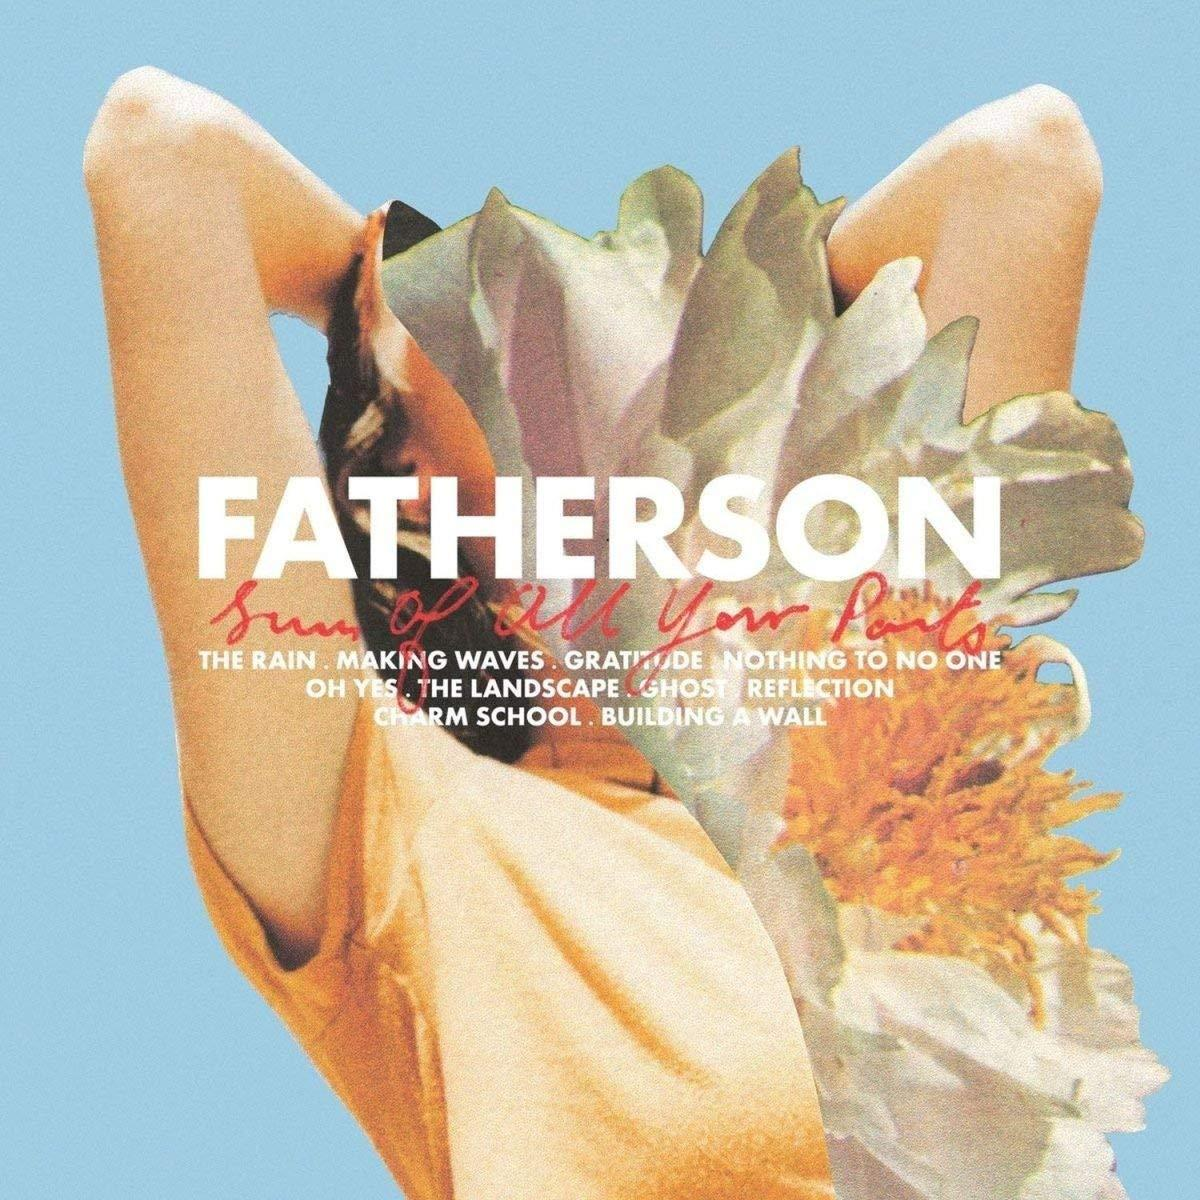 Fatherson-Sum-Of-All-Your-Parts (2)